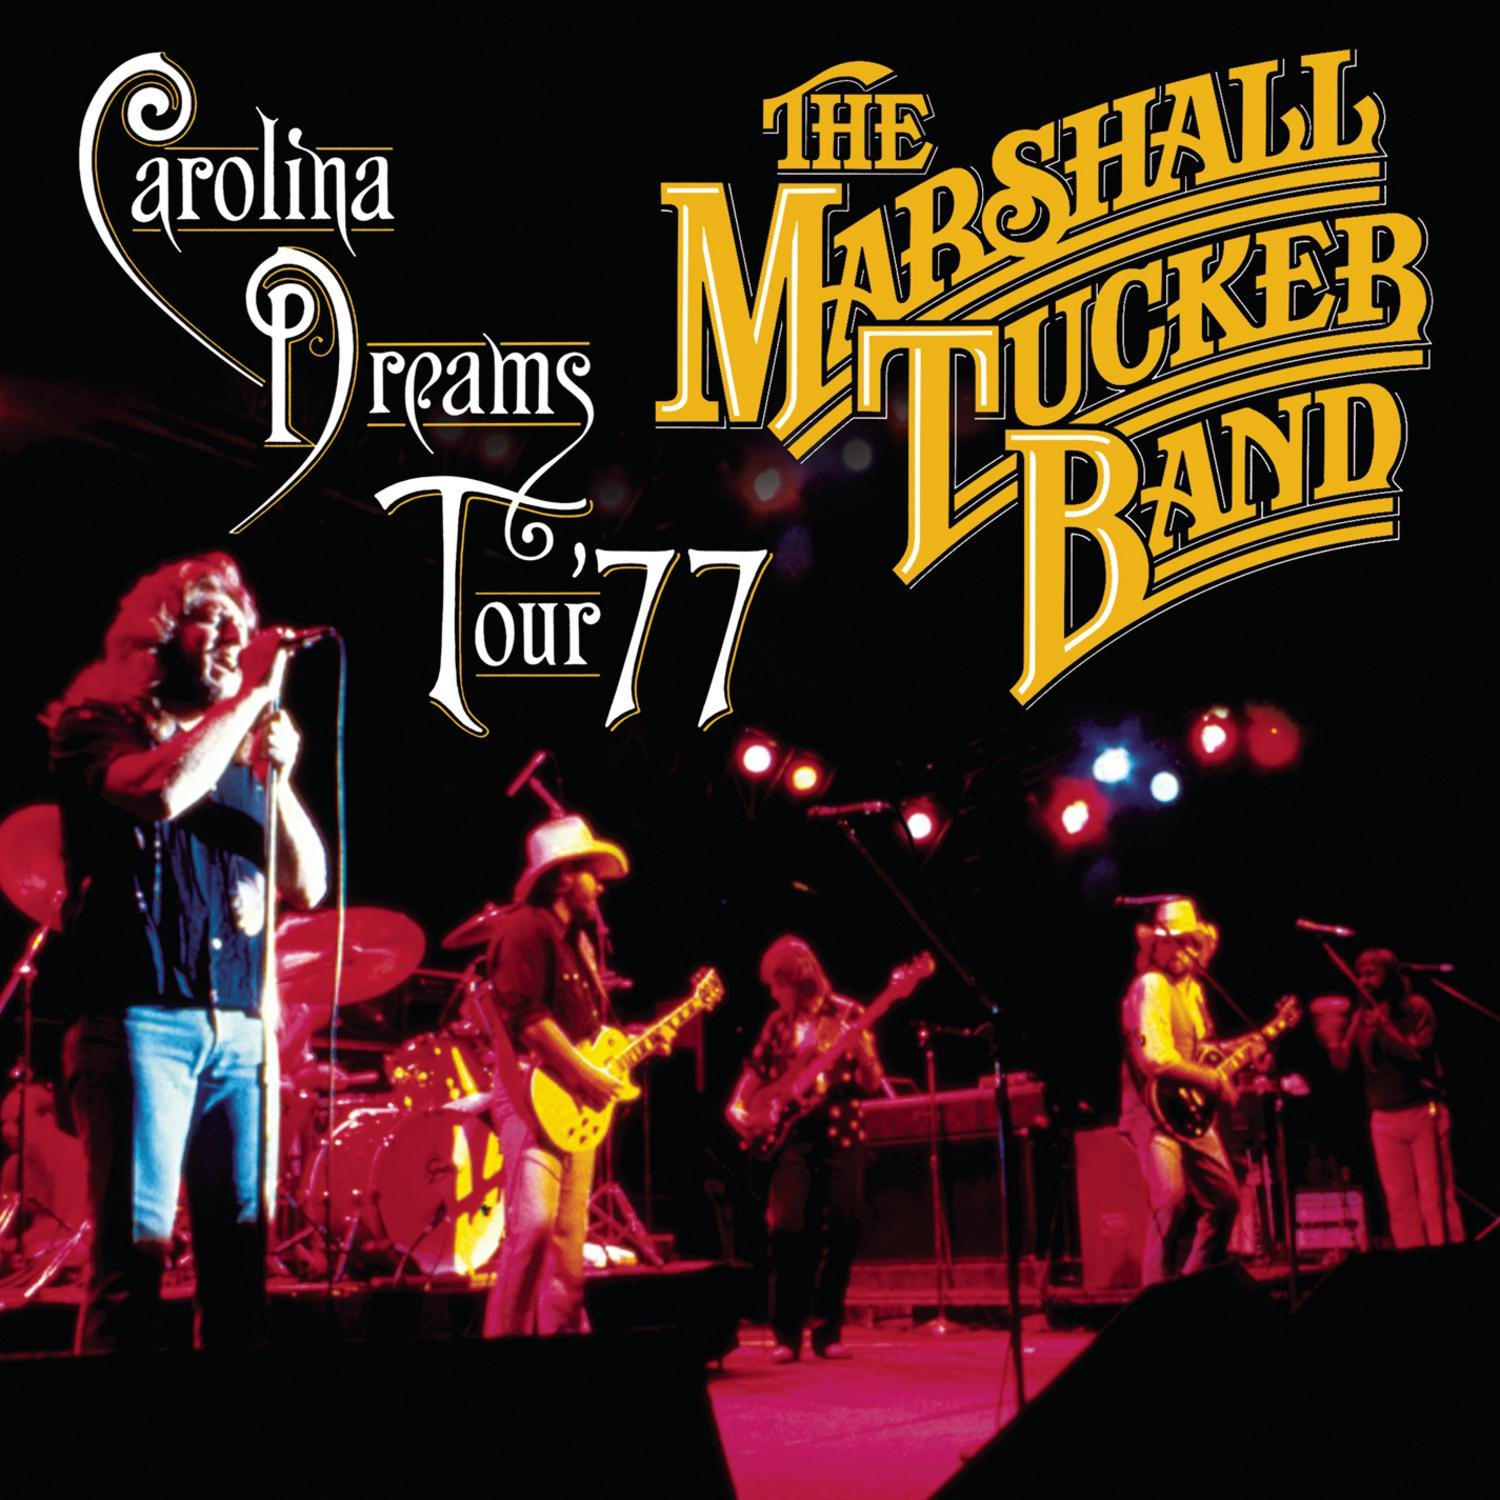 The Marshall Tucker Band: Carolina Dreams - Tour 77 (DVD + CD) by Shout Factory